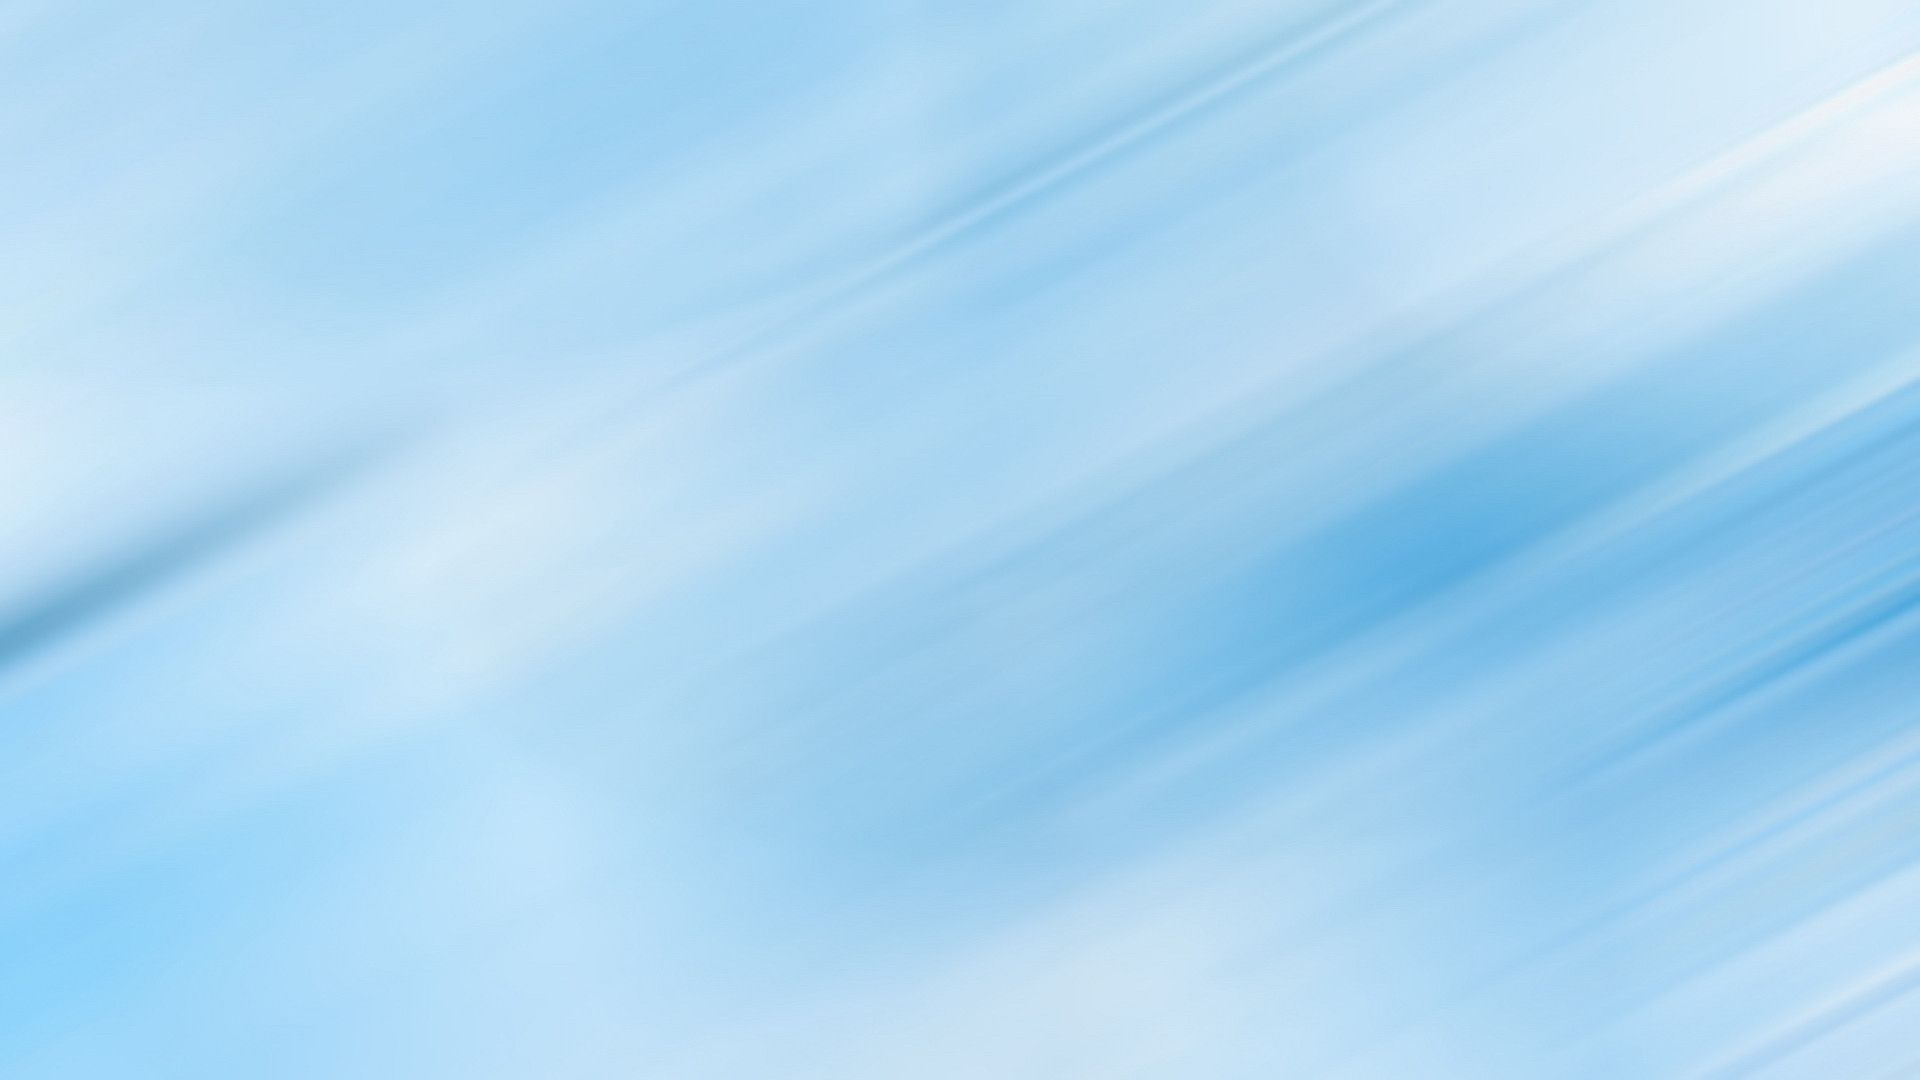 Wallpapers For Light Sky Blue Background 1920x1080